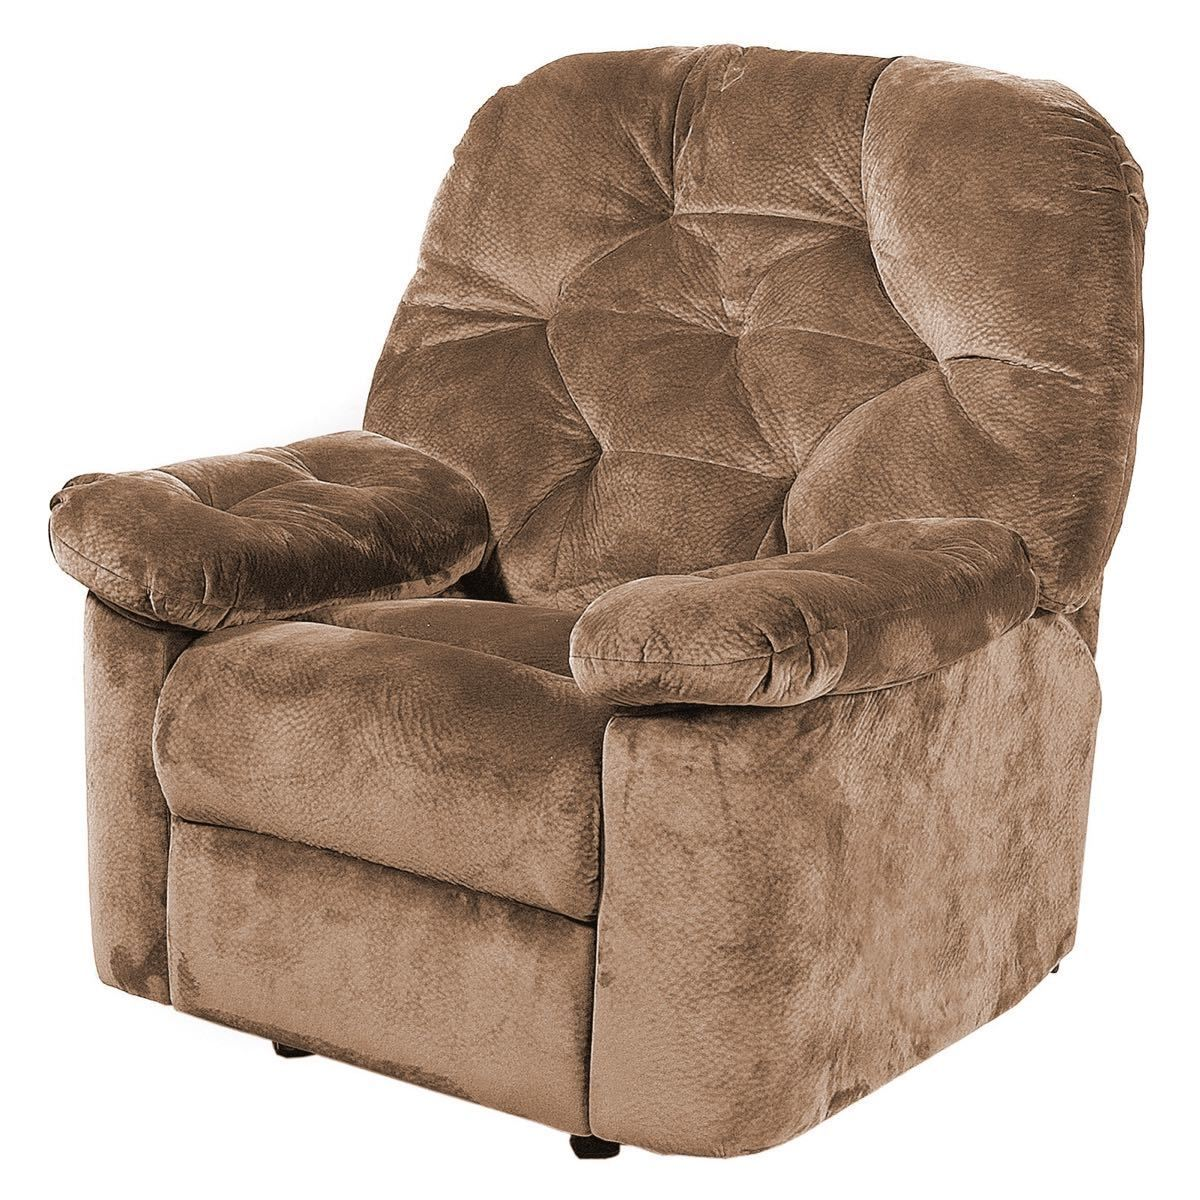 overstock today serta home product recliner free shipping heated warming chair protector garden